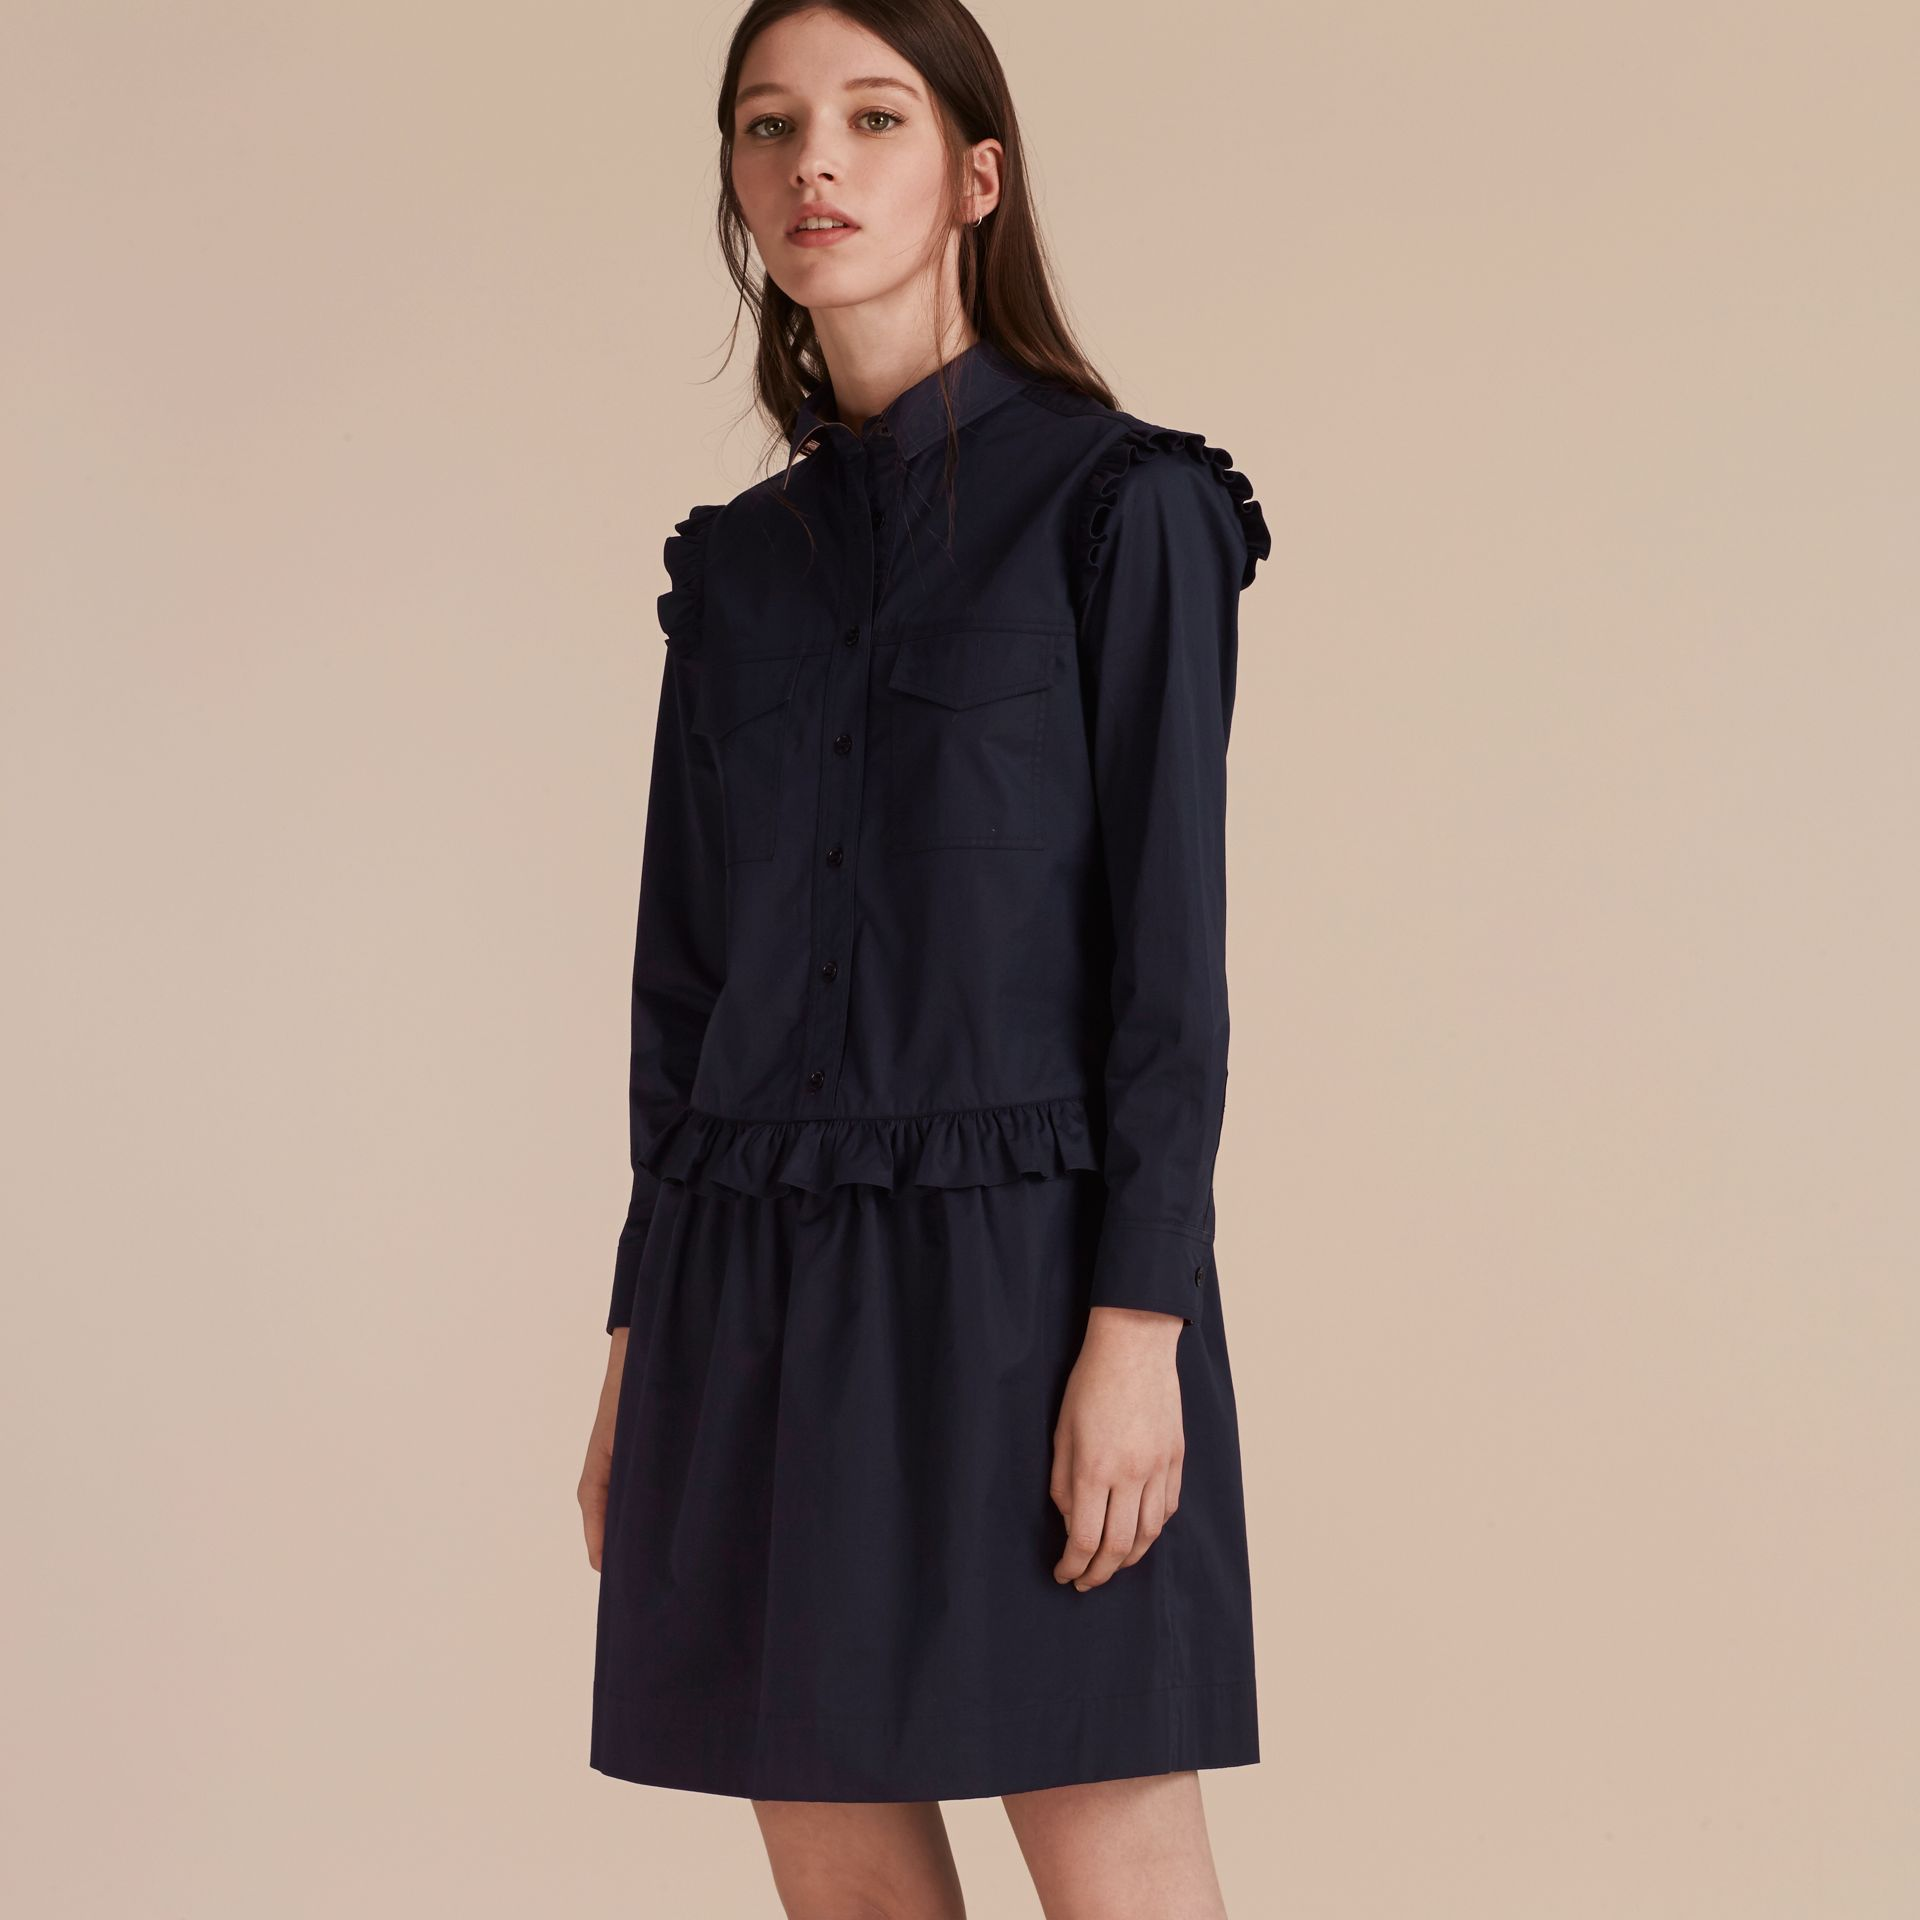 Ruffle and Check Detail Cotton Shirt Dress Navy - gallery image 7